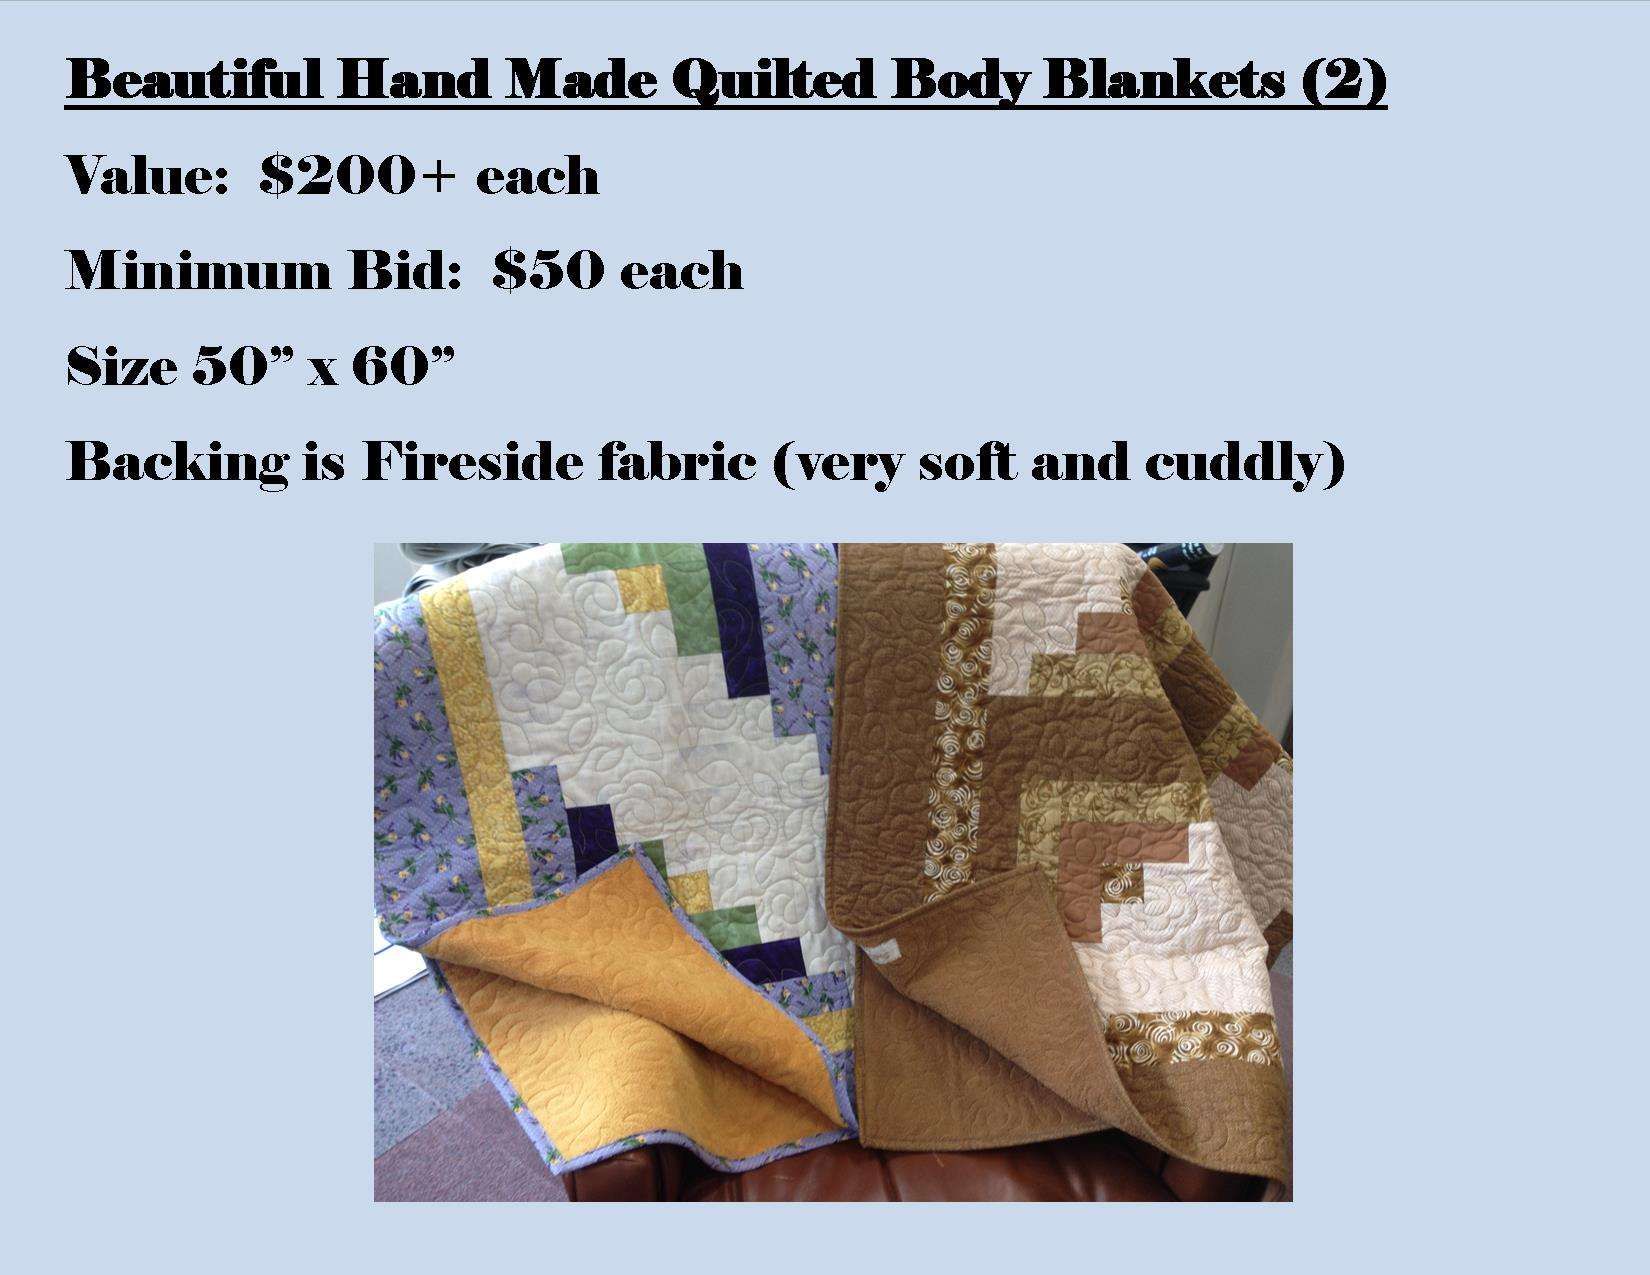 Home Made Quilted Body Blankets.jpg